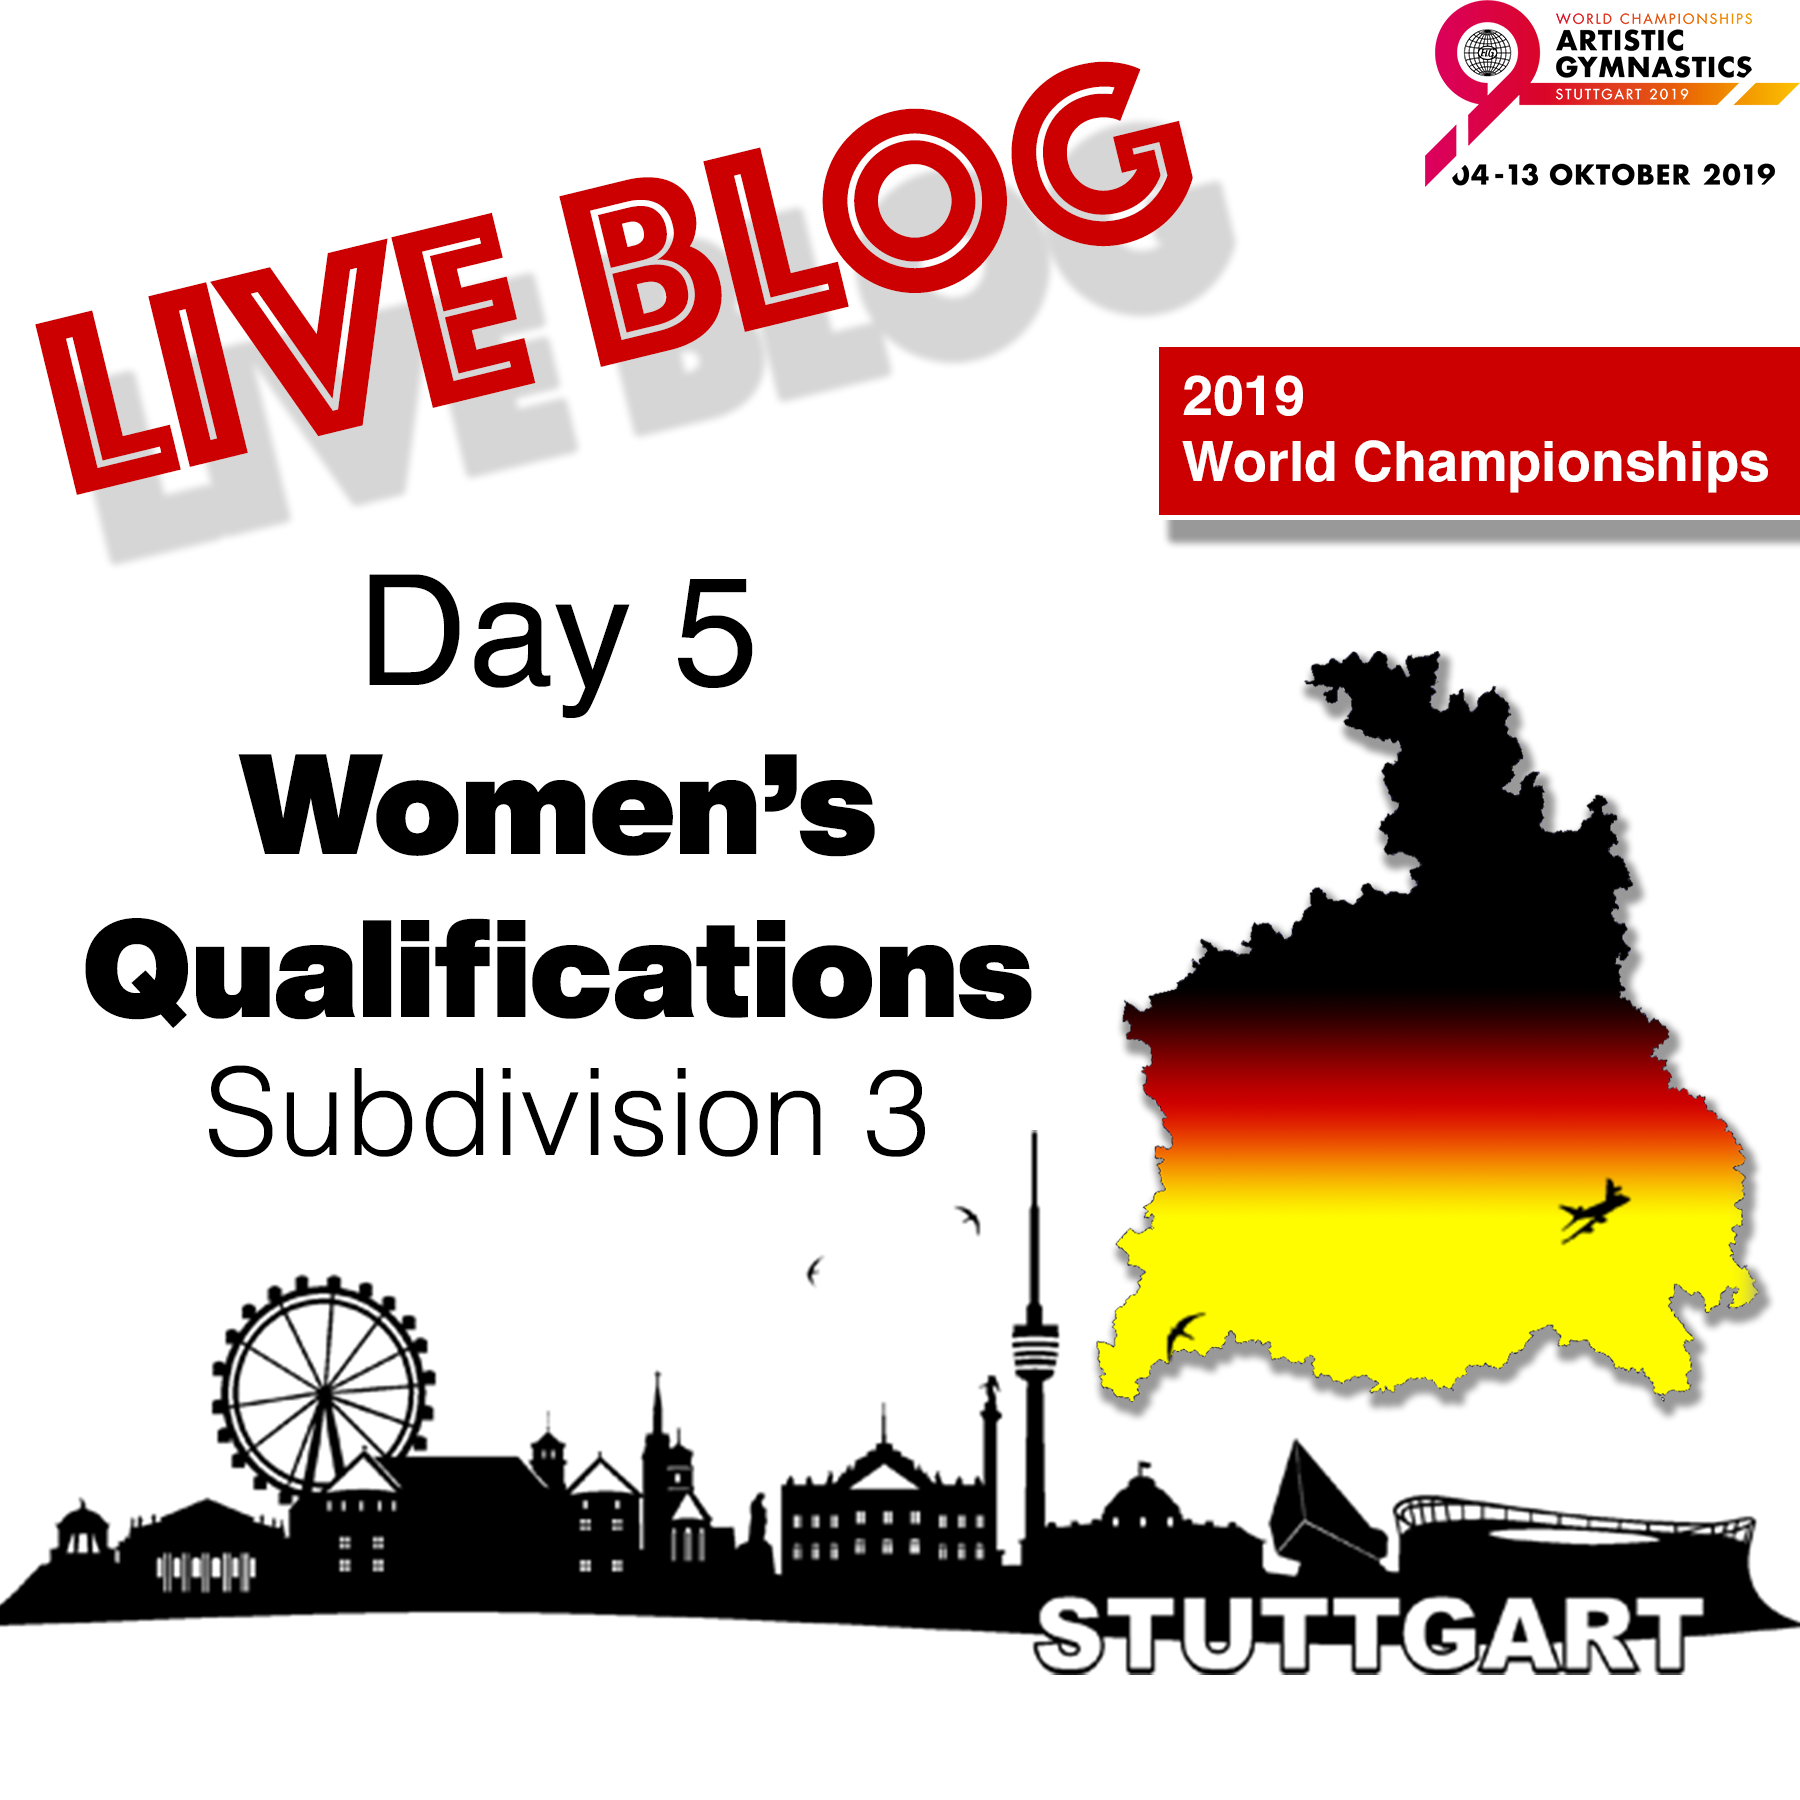 Live Blog: 2019 World Championships – WAG Qualifications – Sub Division 3, Oct. 4th